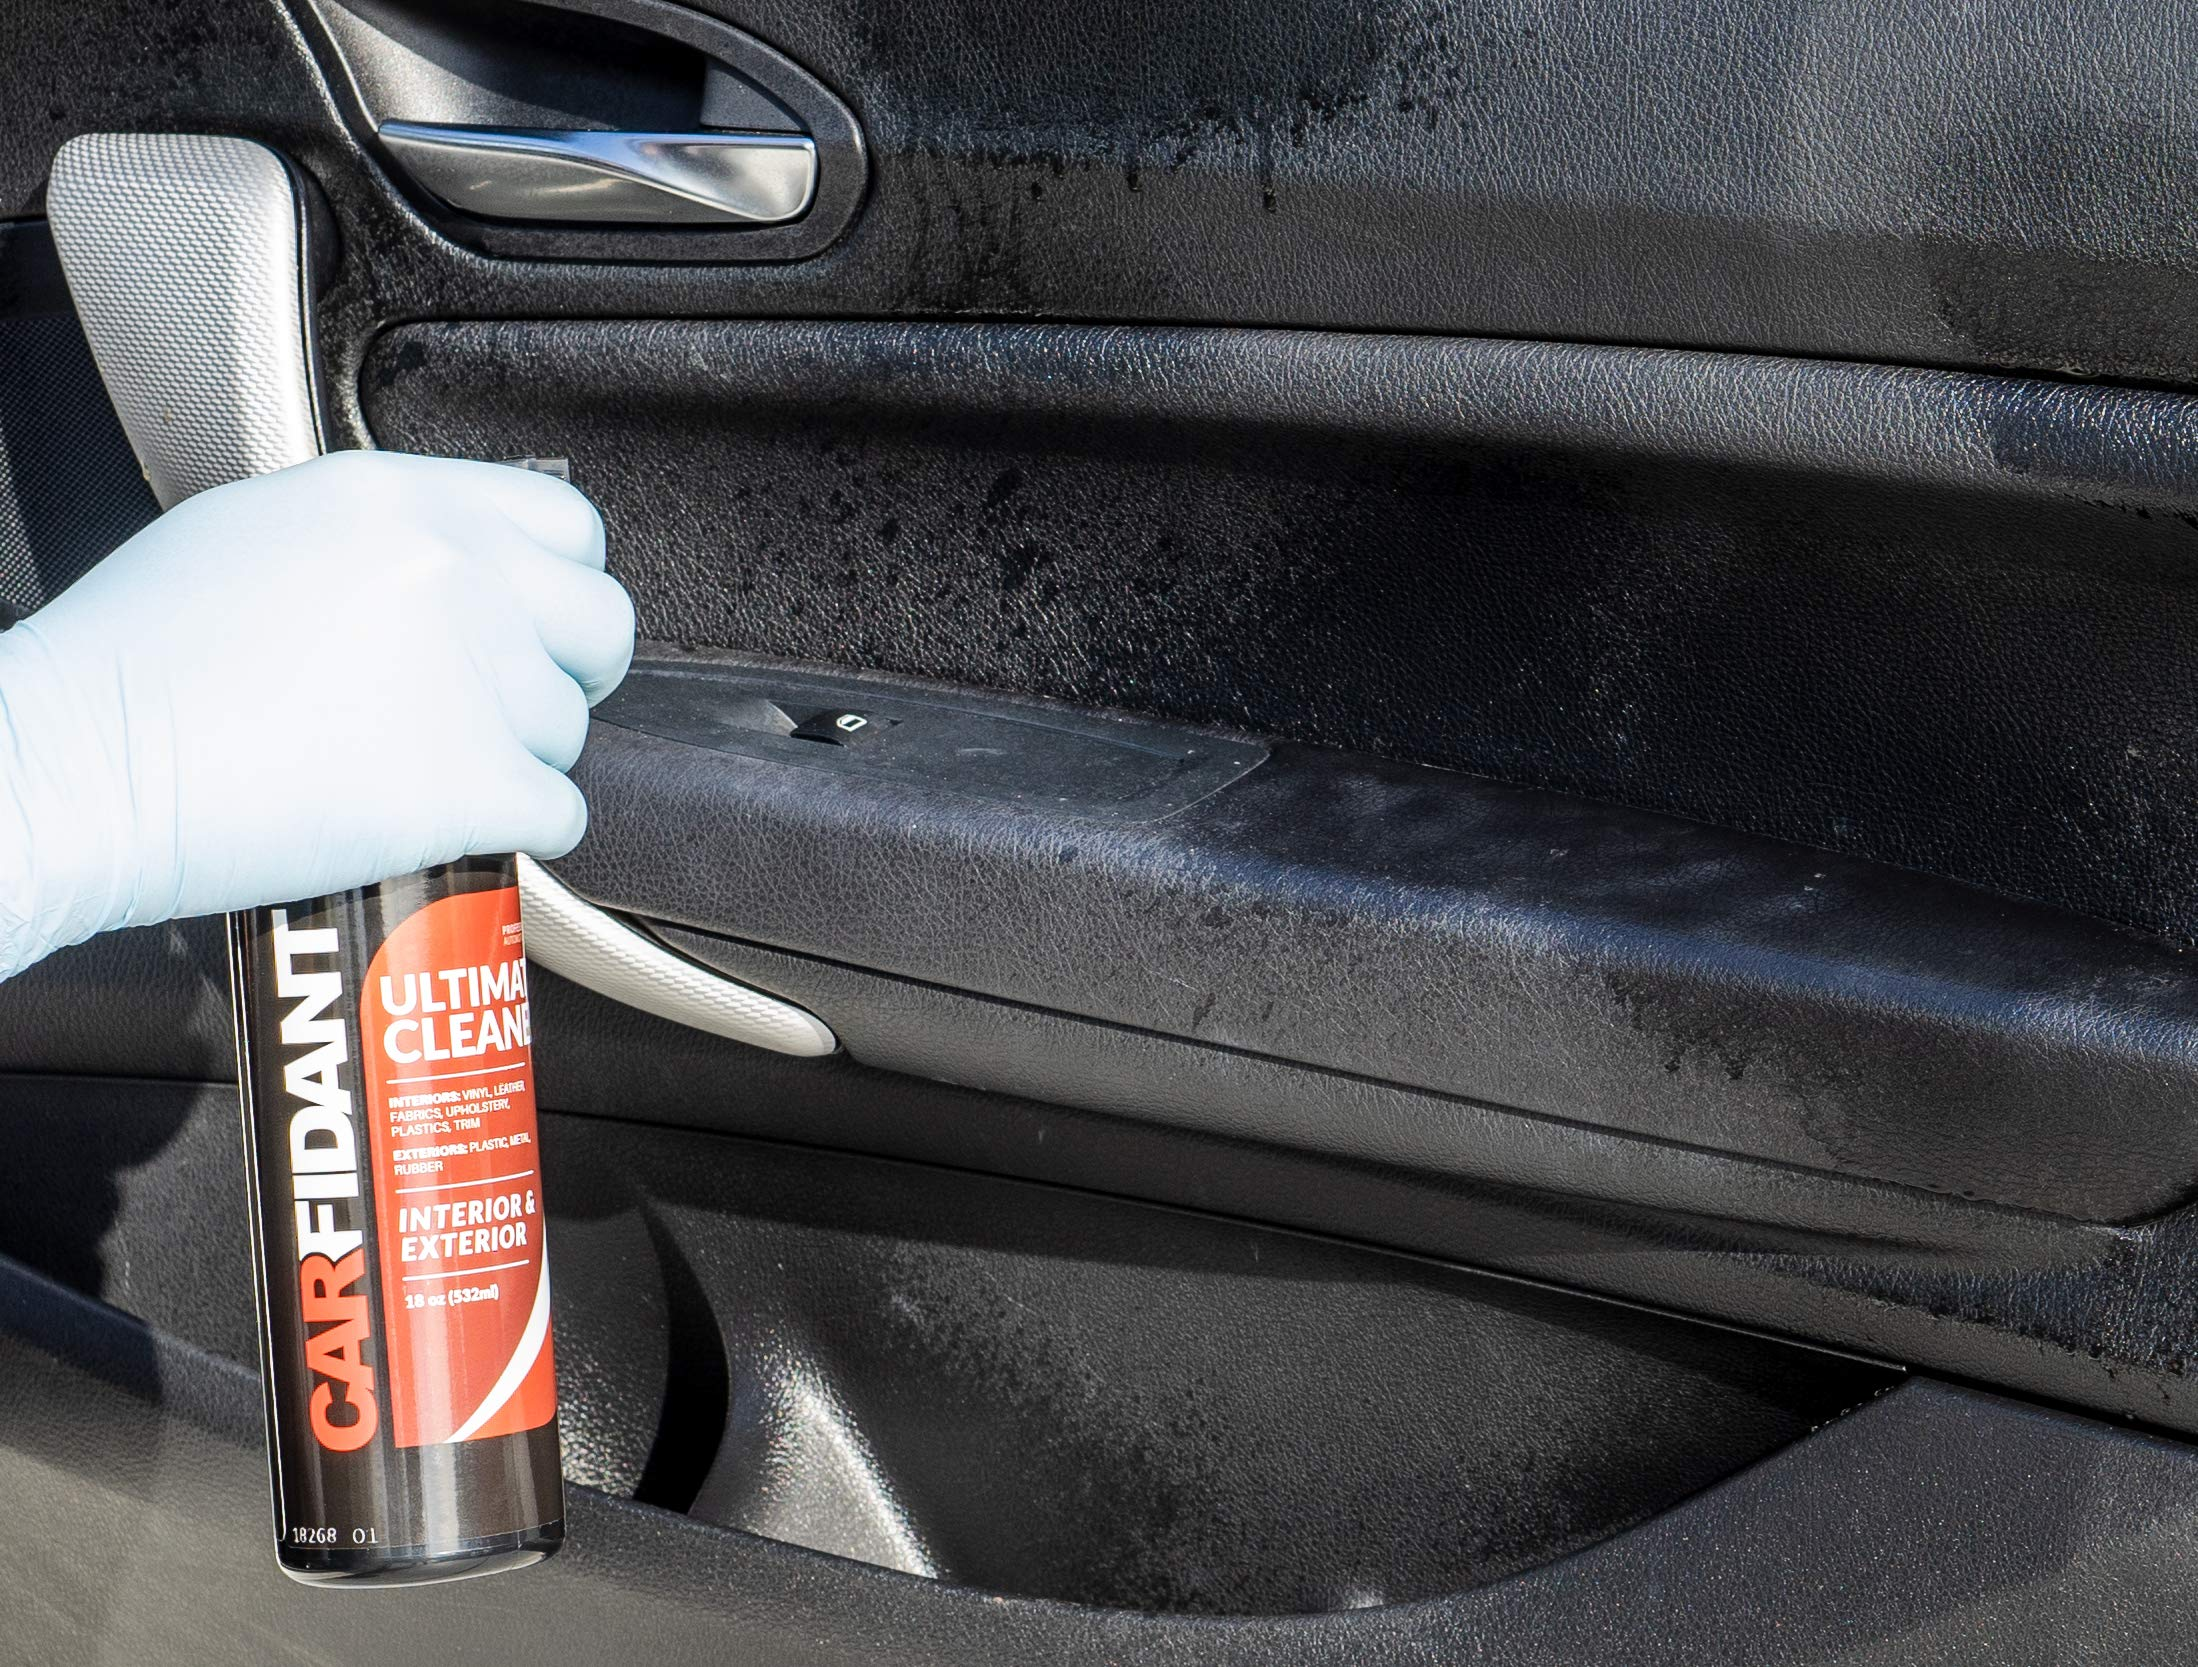 Carfidant Ultimate Car Interior Cleaner - Automotive Interior & Exterior Cleaner All Purpose Cleaner for Car Carpet Upholstery Leather Vinyl Cloth Plastic Seats Trim Engine Mats - Car Cleaning Kit by Carfidant (Image #3)